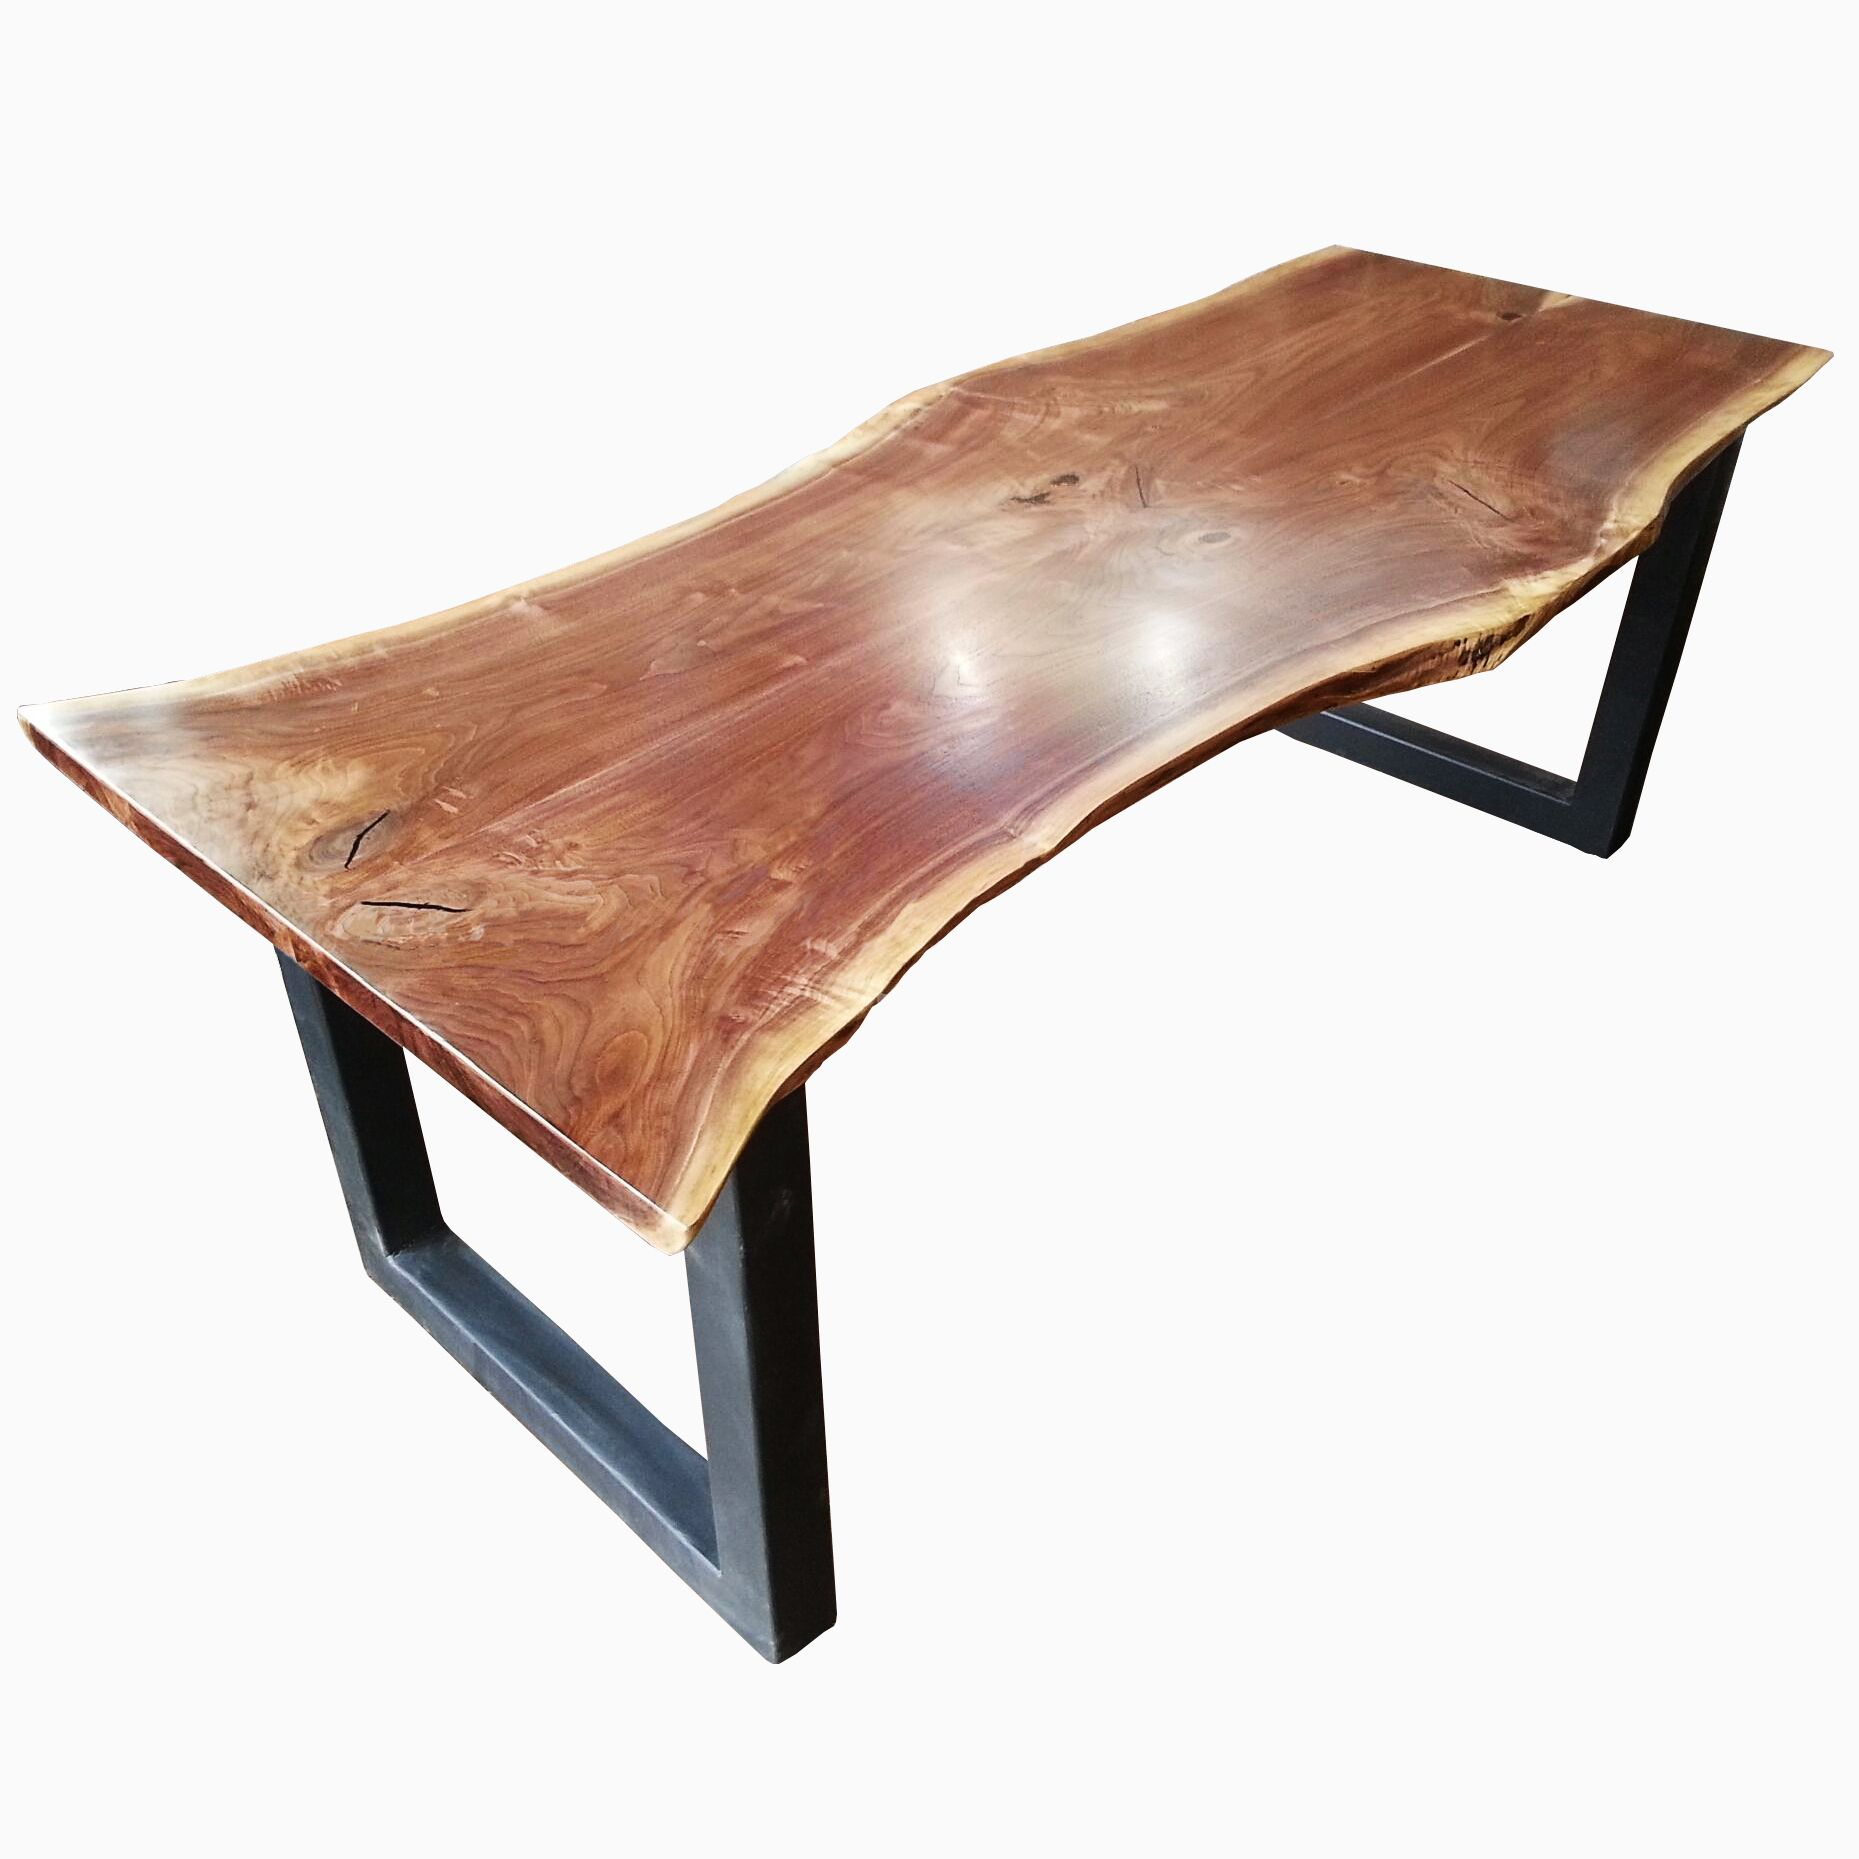 Hand Made Natural Live Edge Dining Table Industrial  : 265557933379 from www.custommade.com size 1859 x 1859 jpeg 163kB